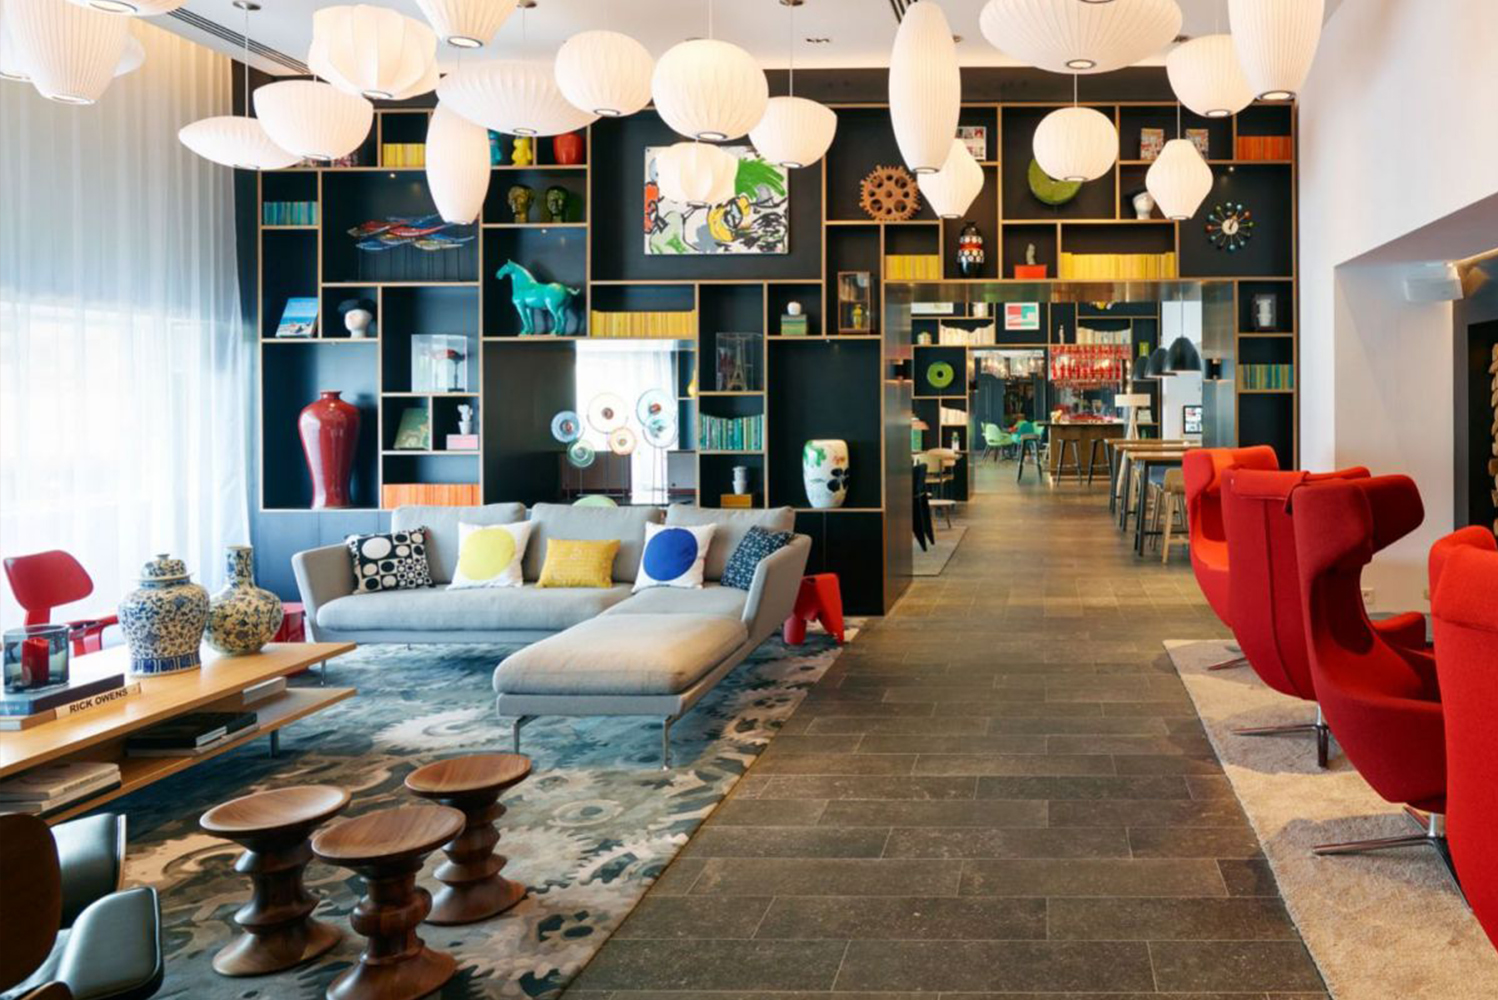 The living room also has the dining and bar concept called canteenM, which has custom artwork from French street artist Mast Cora.